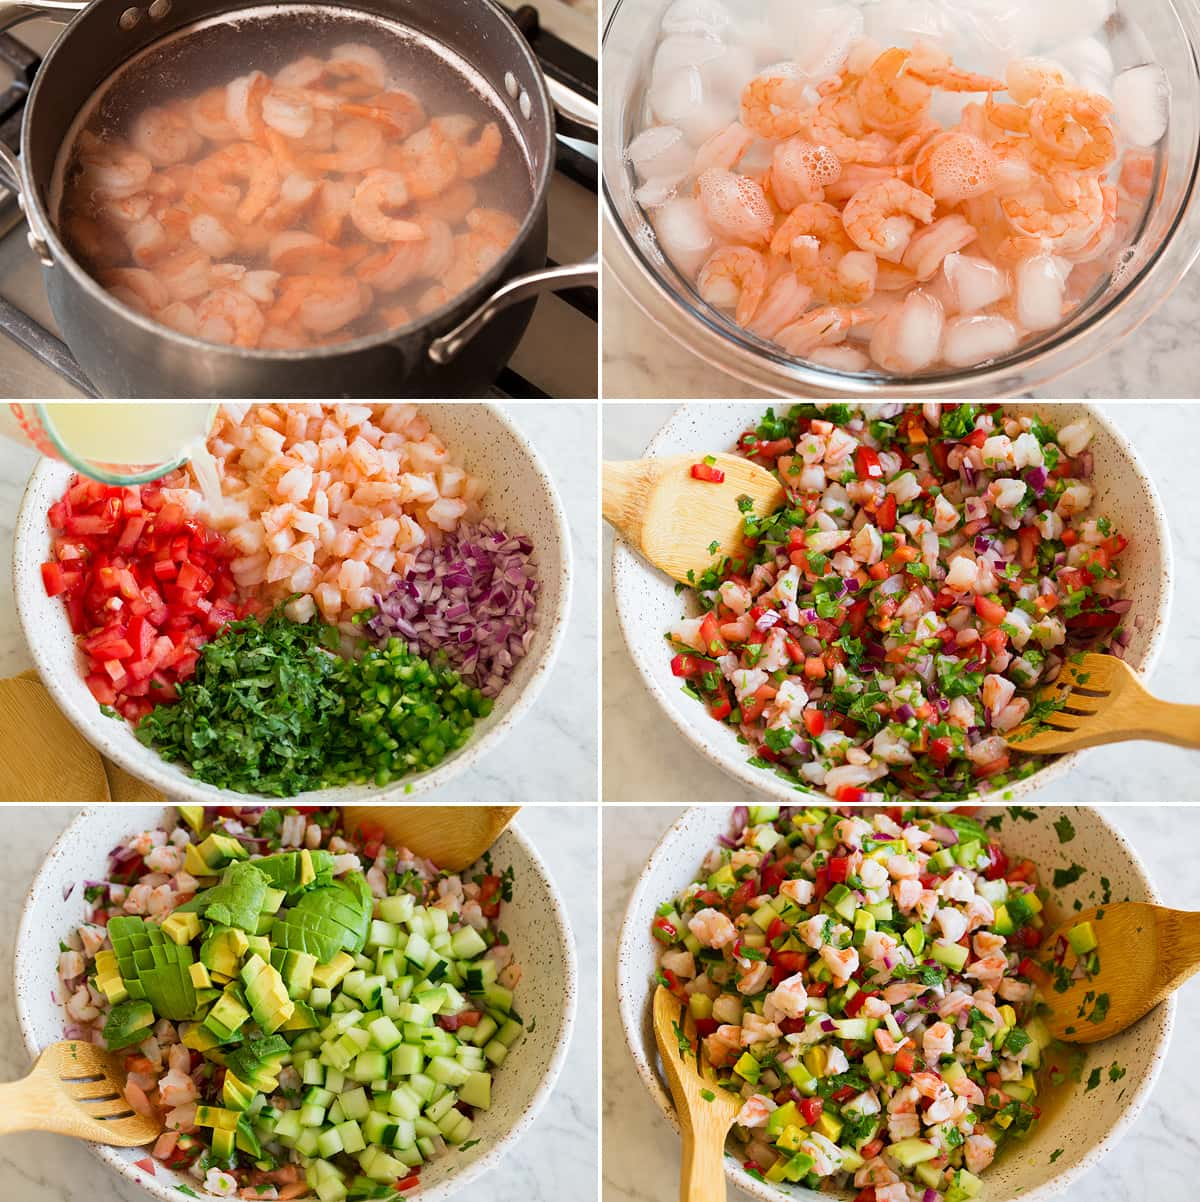 Collage of six images showing steps to cooking shrimp, chilling it in ice, and tossing together ceviche ingredients in a mixing bowl.